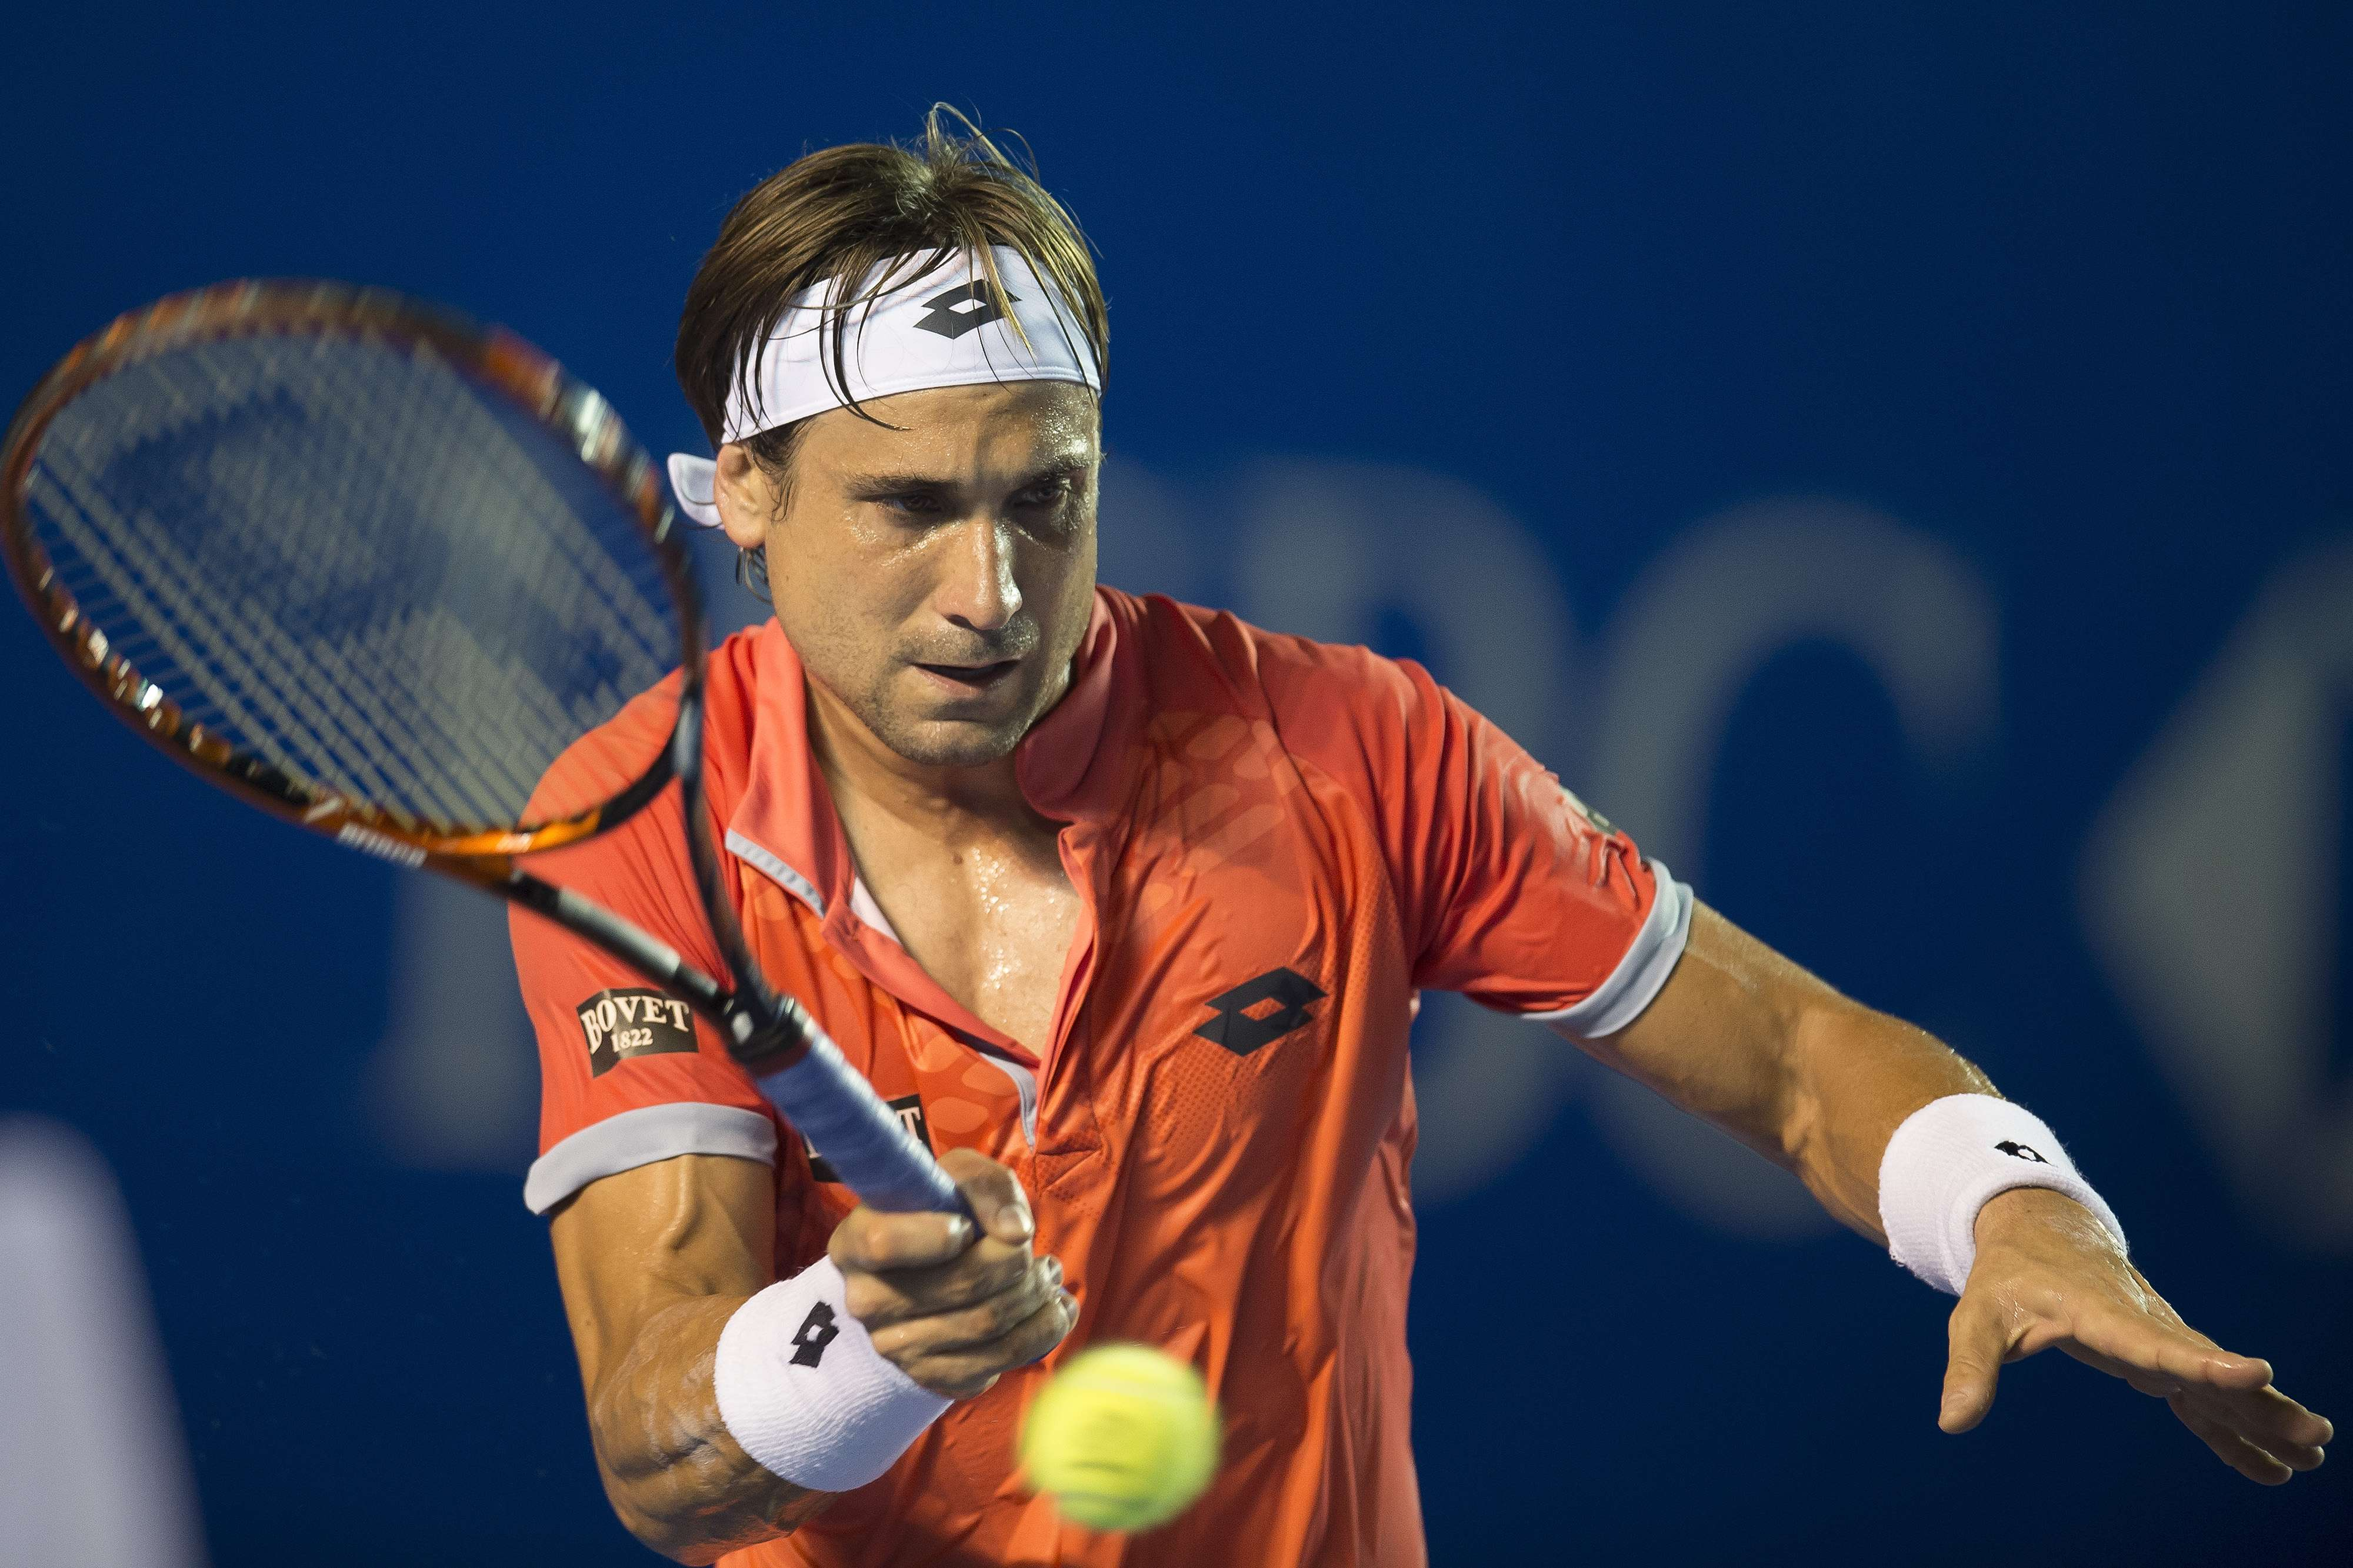 Ferrer disputará la final. Foto: Mexsport